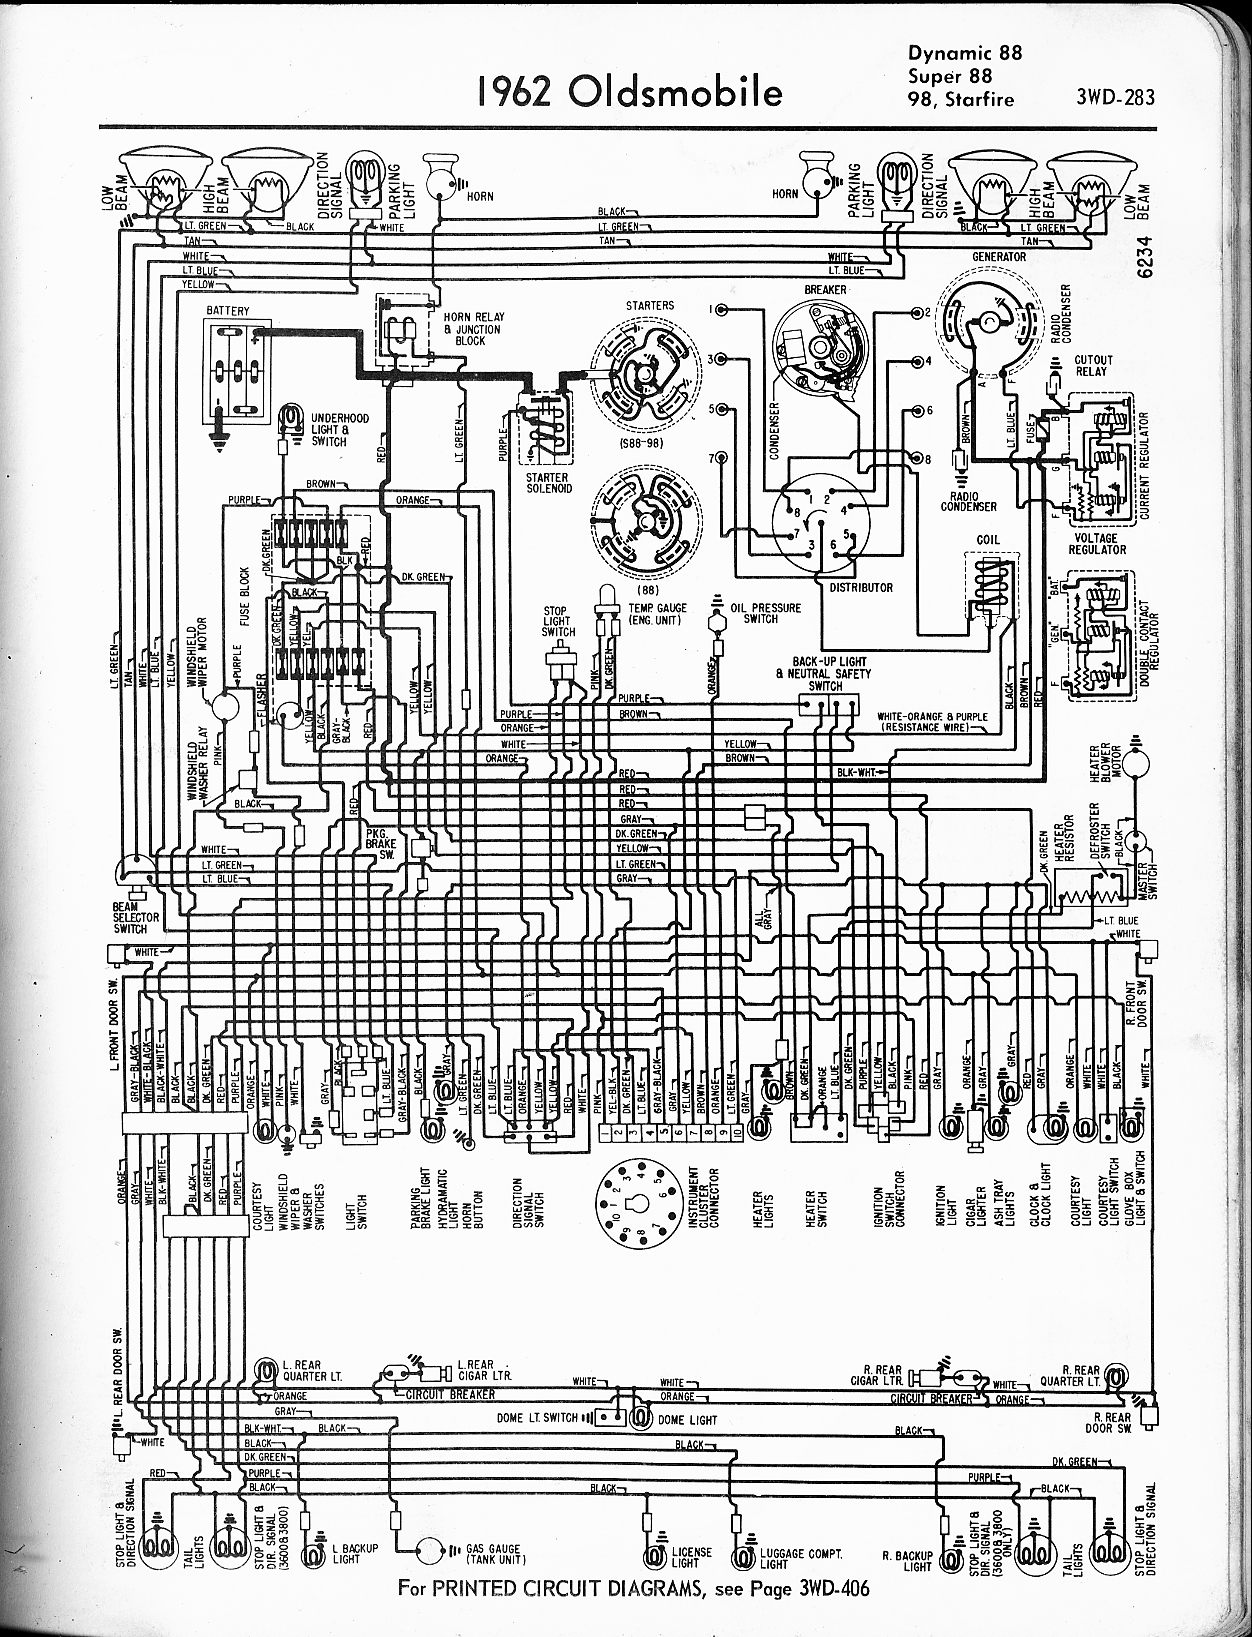 MWire5765 283 oldsmobile wiring diagrams the old car manual project Basic Turn Signal Wiring Diagram at crackthecode.co